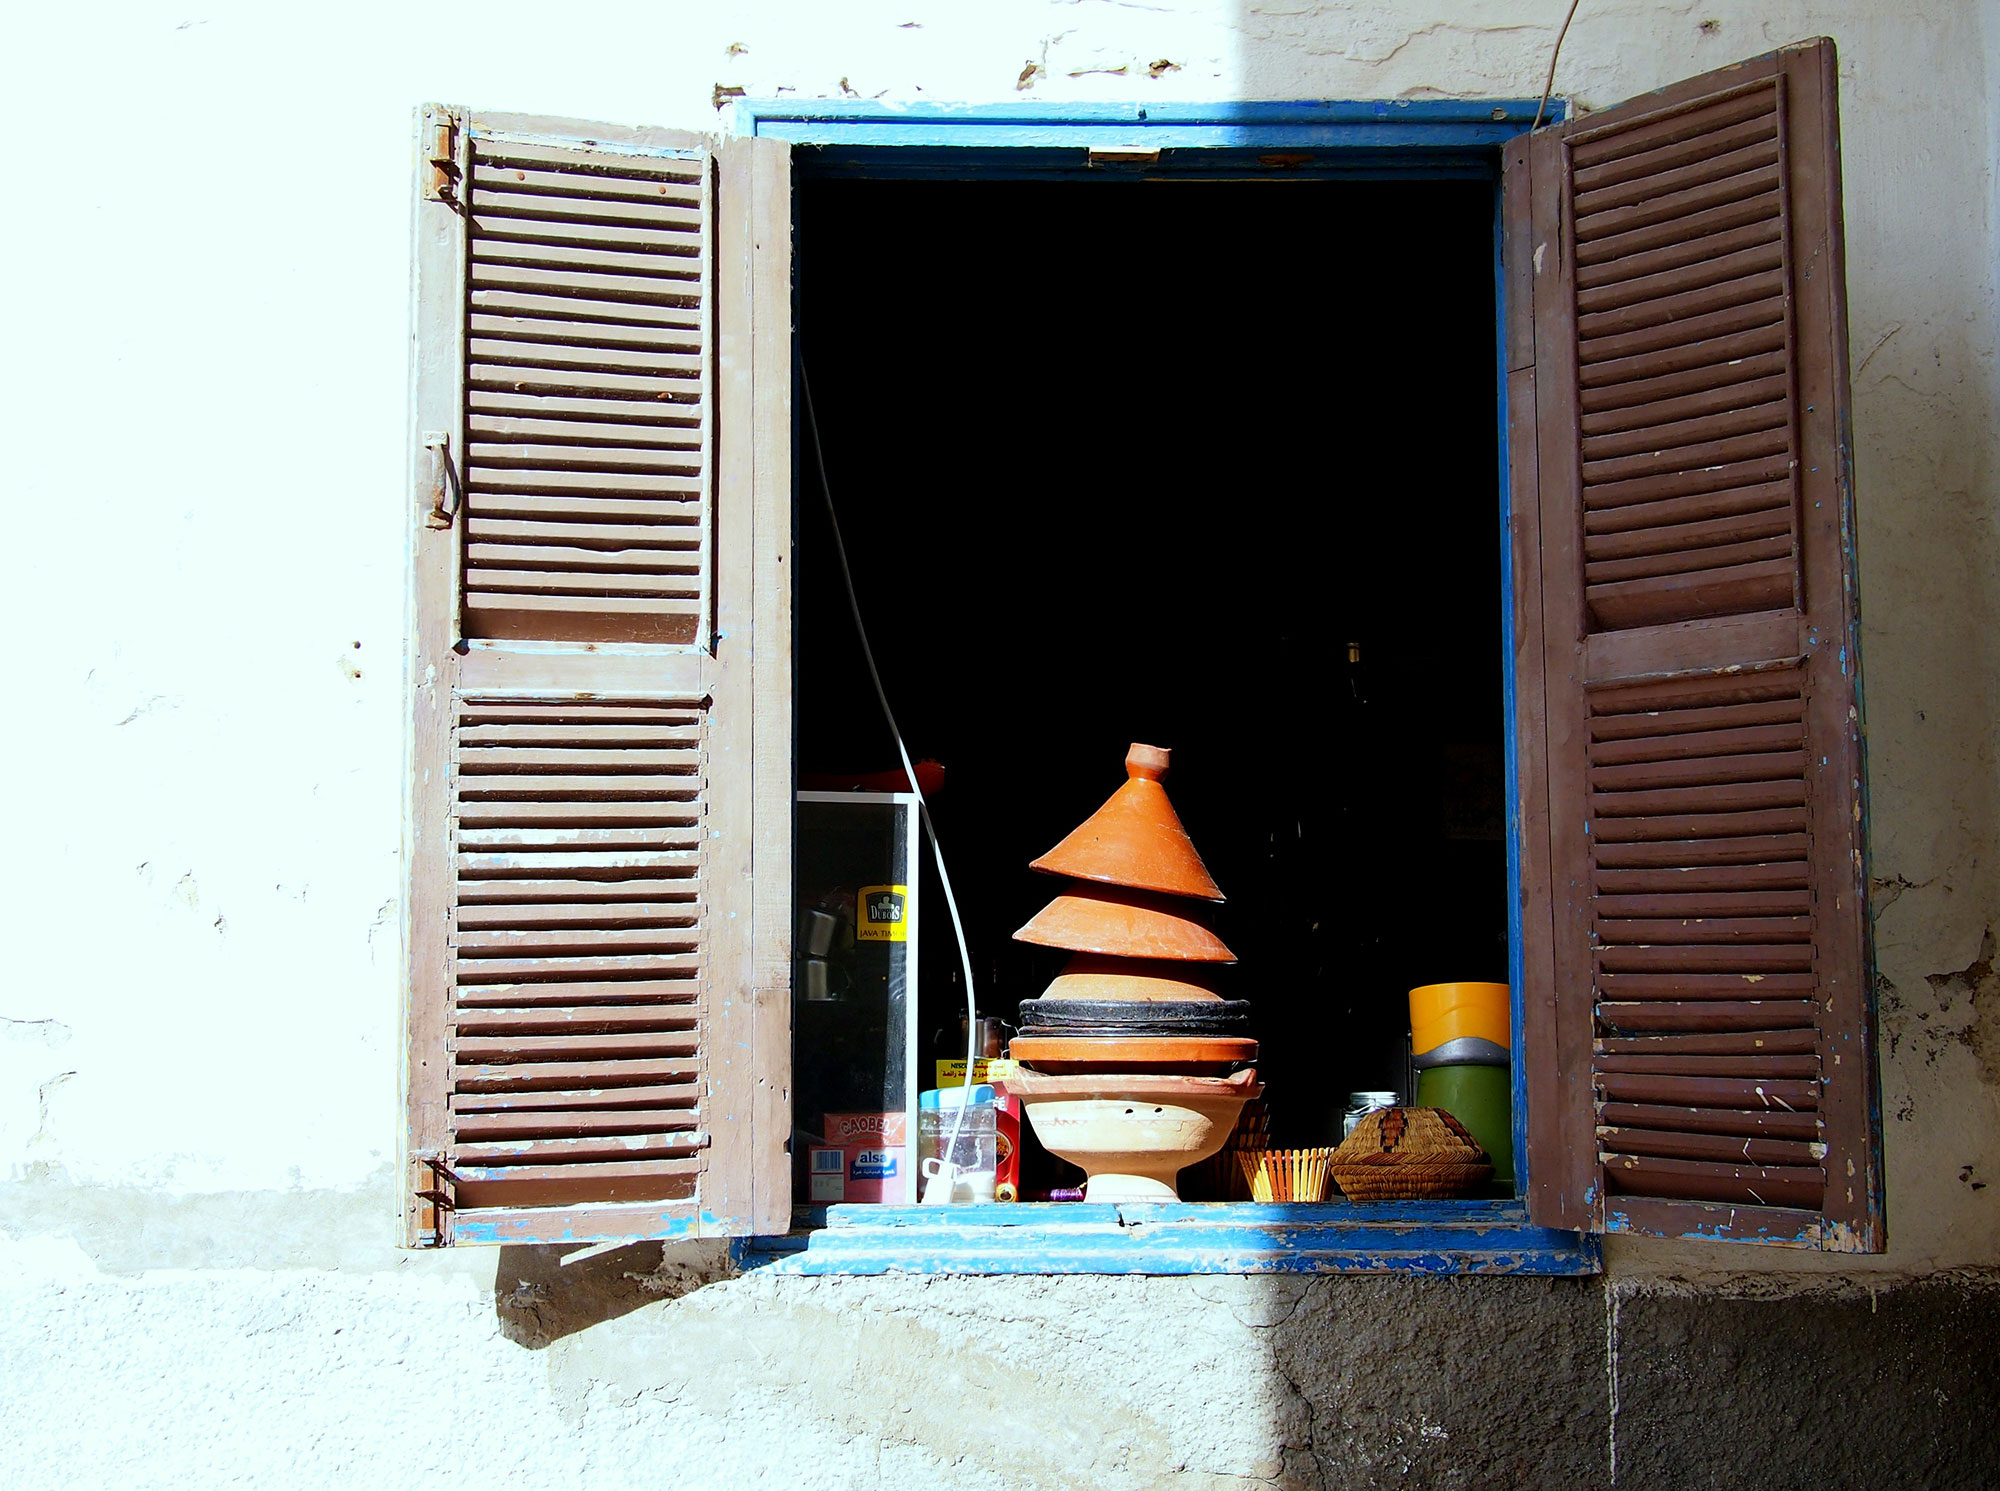 Clay tagines in a windowsill during a visit to Essaouira, Morocco.